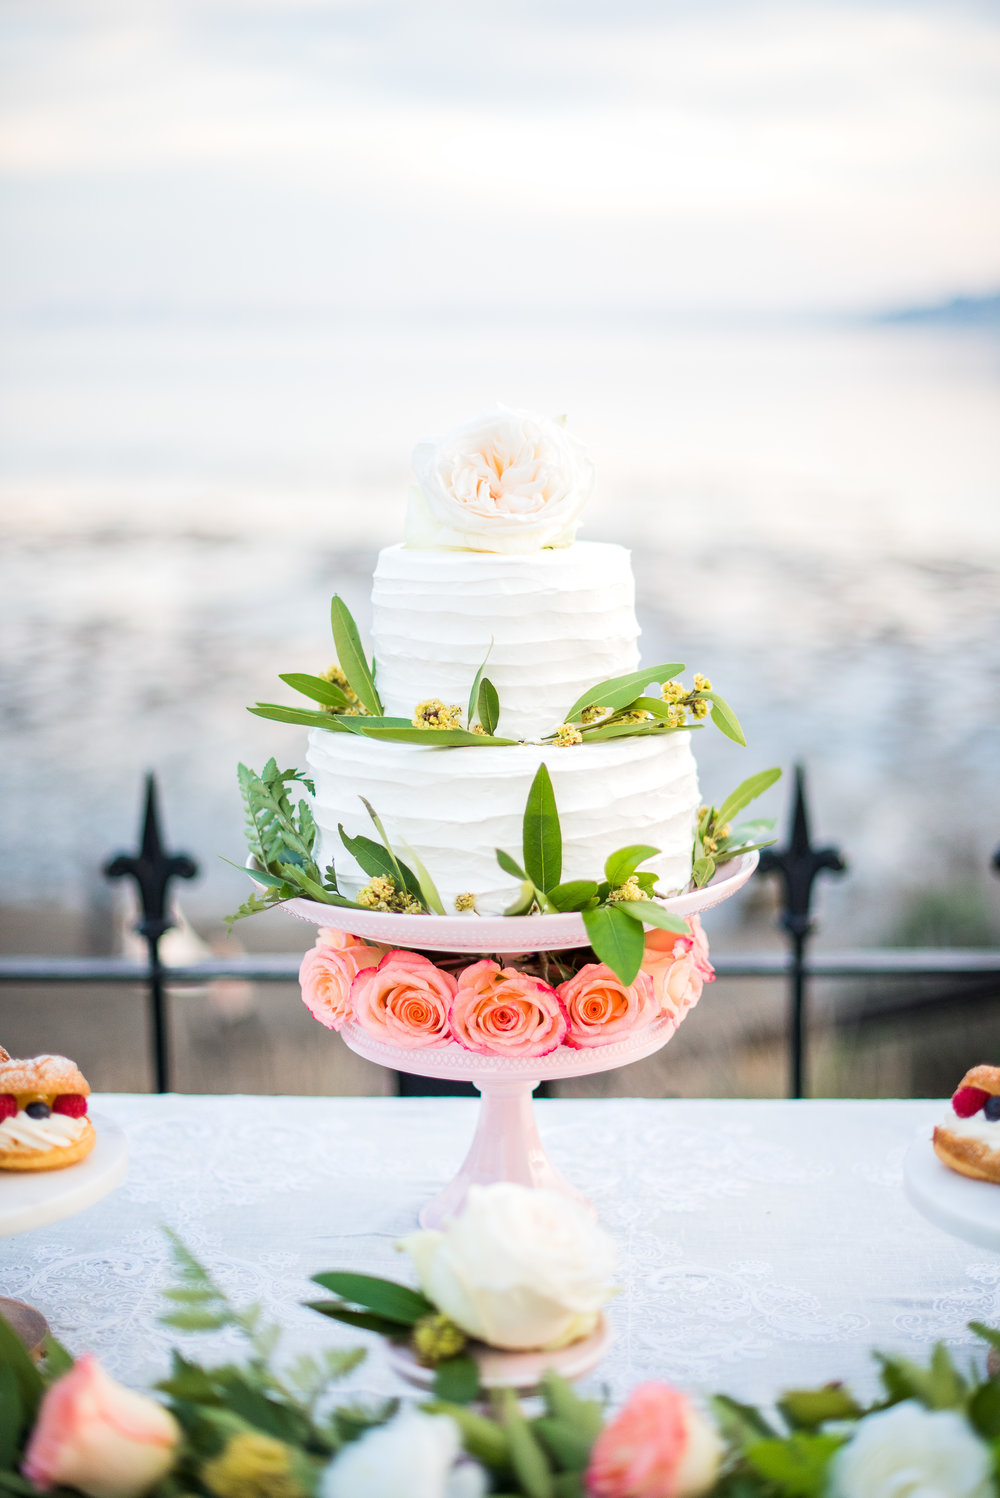 Two tiered textured buttercream cake adorned with greenery. Photo:  Yasmin Roohi